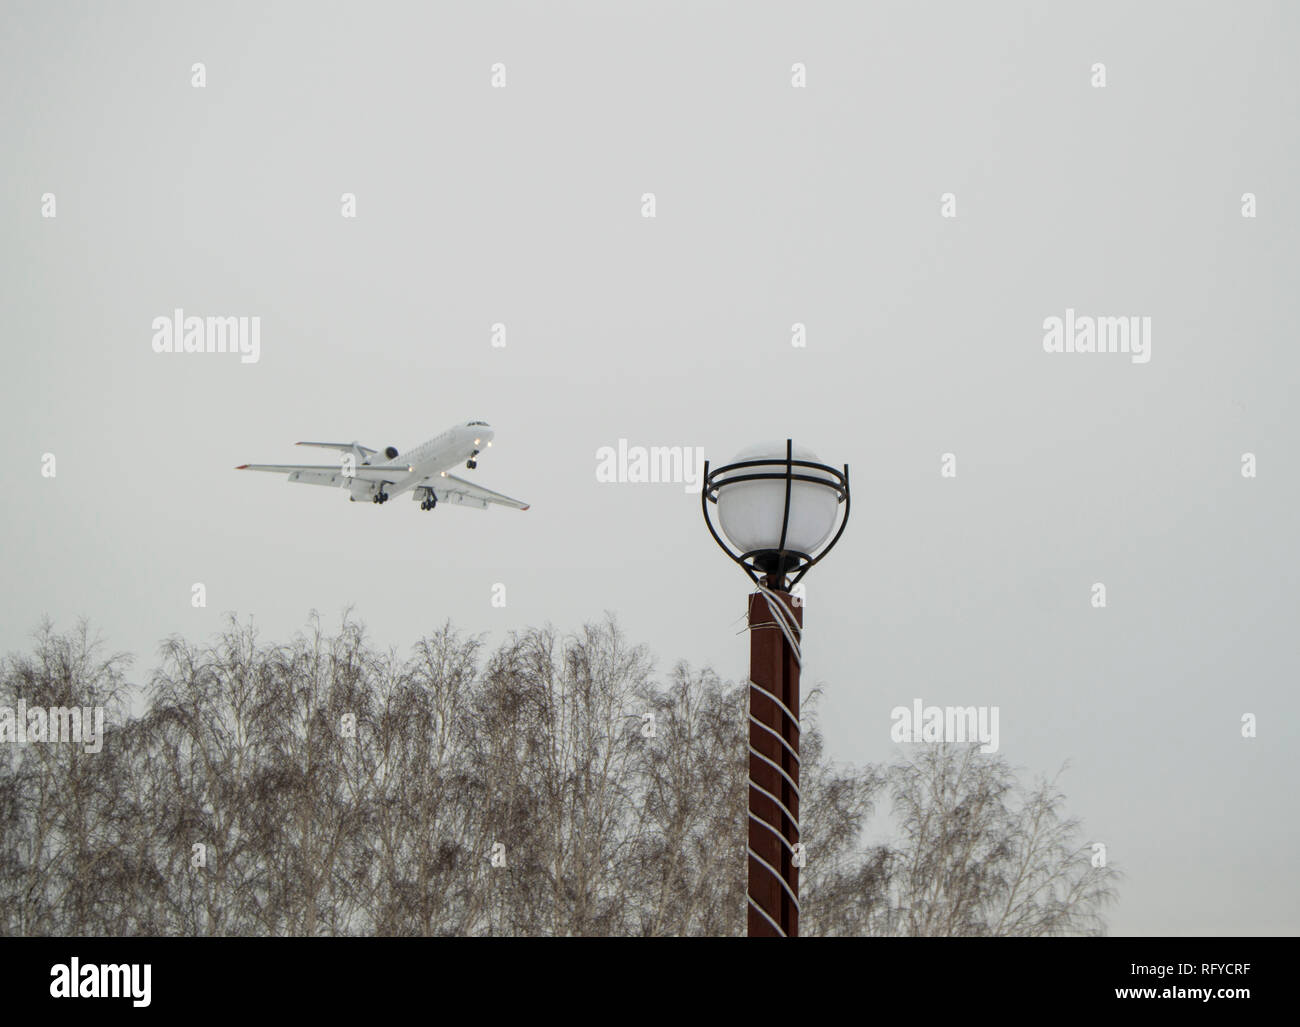 The plane flies low over the city Park and trees, cloudy winter sky. Copy space business travel adventure concept. - Stock Image